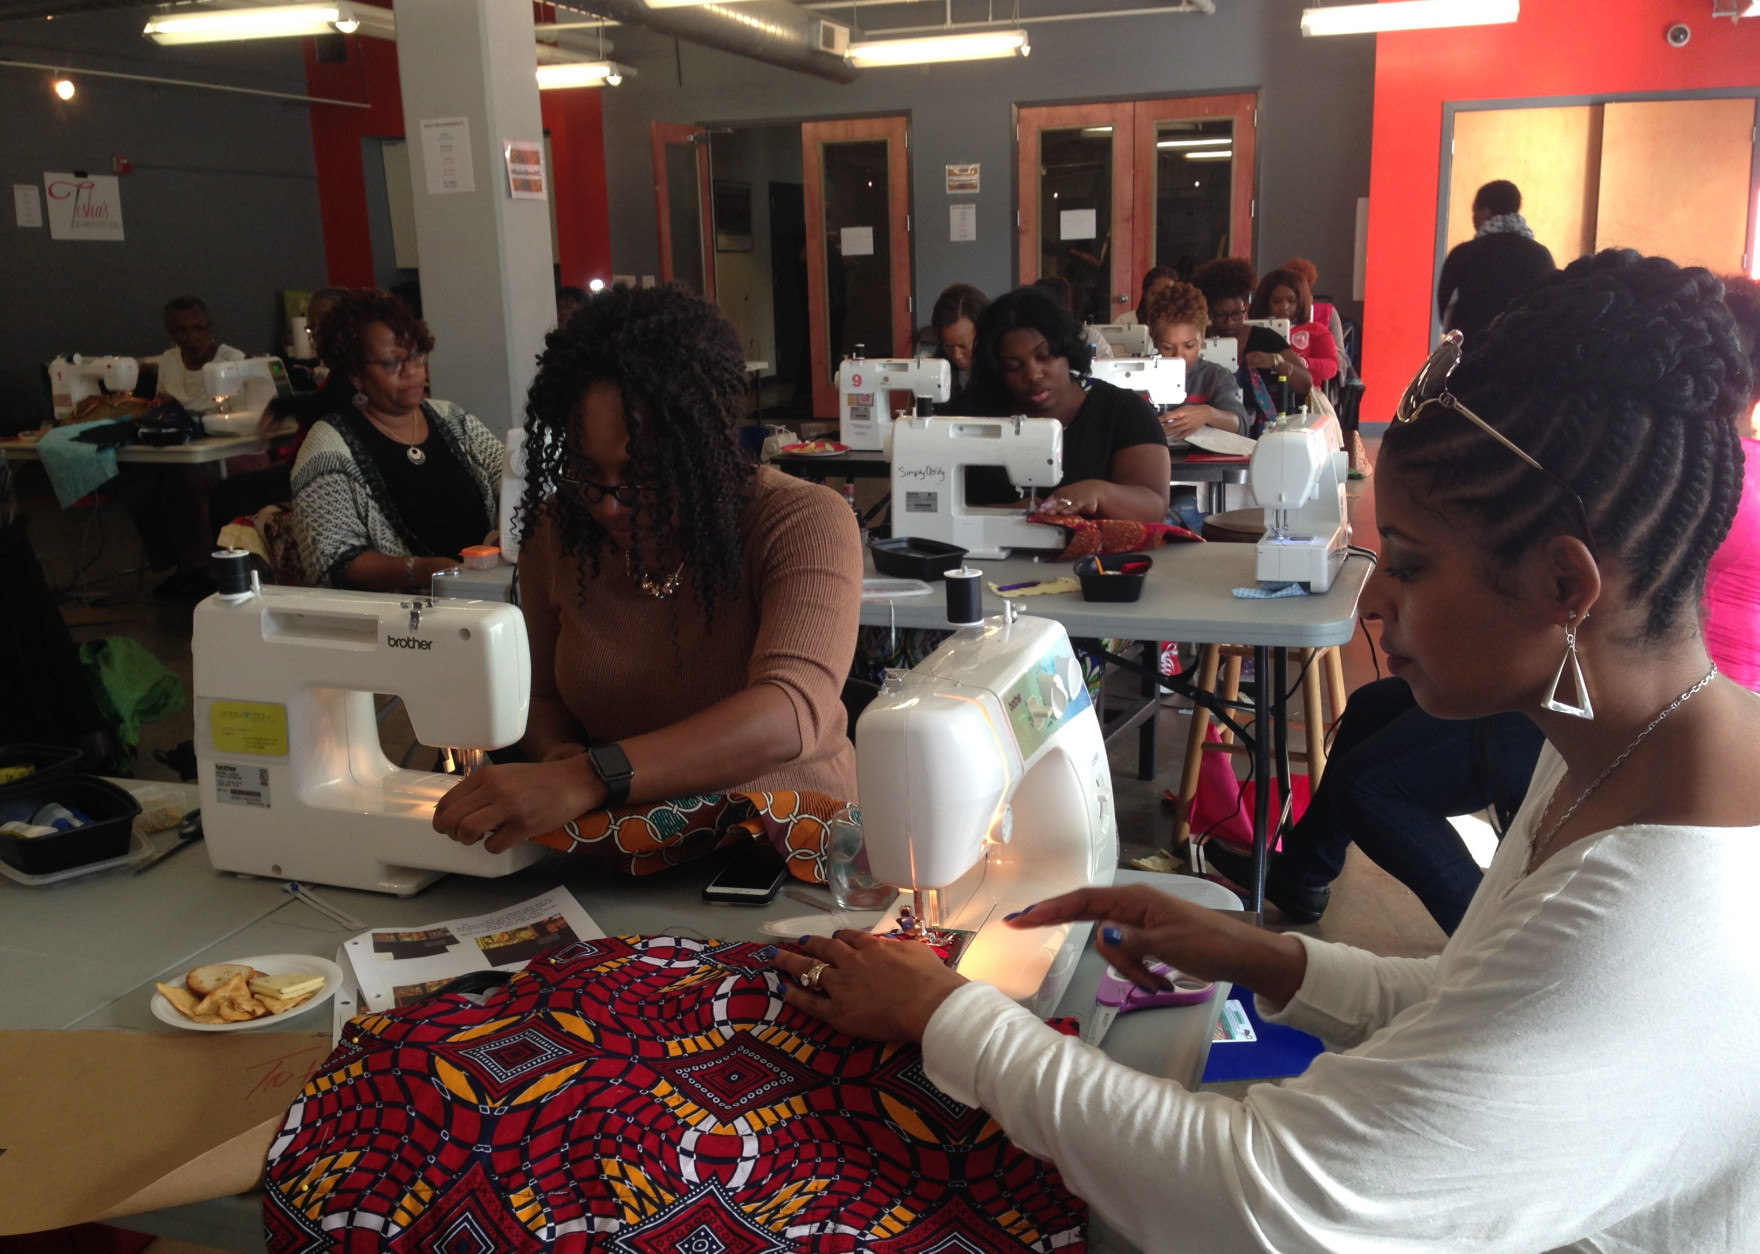 There aren't many options for people to learn to sew in the D.C. region, one of the reasons Sip and Sew workshops such as this one have become so popular. (Courtesy Sip & Sew DC)